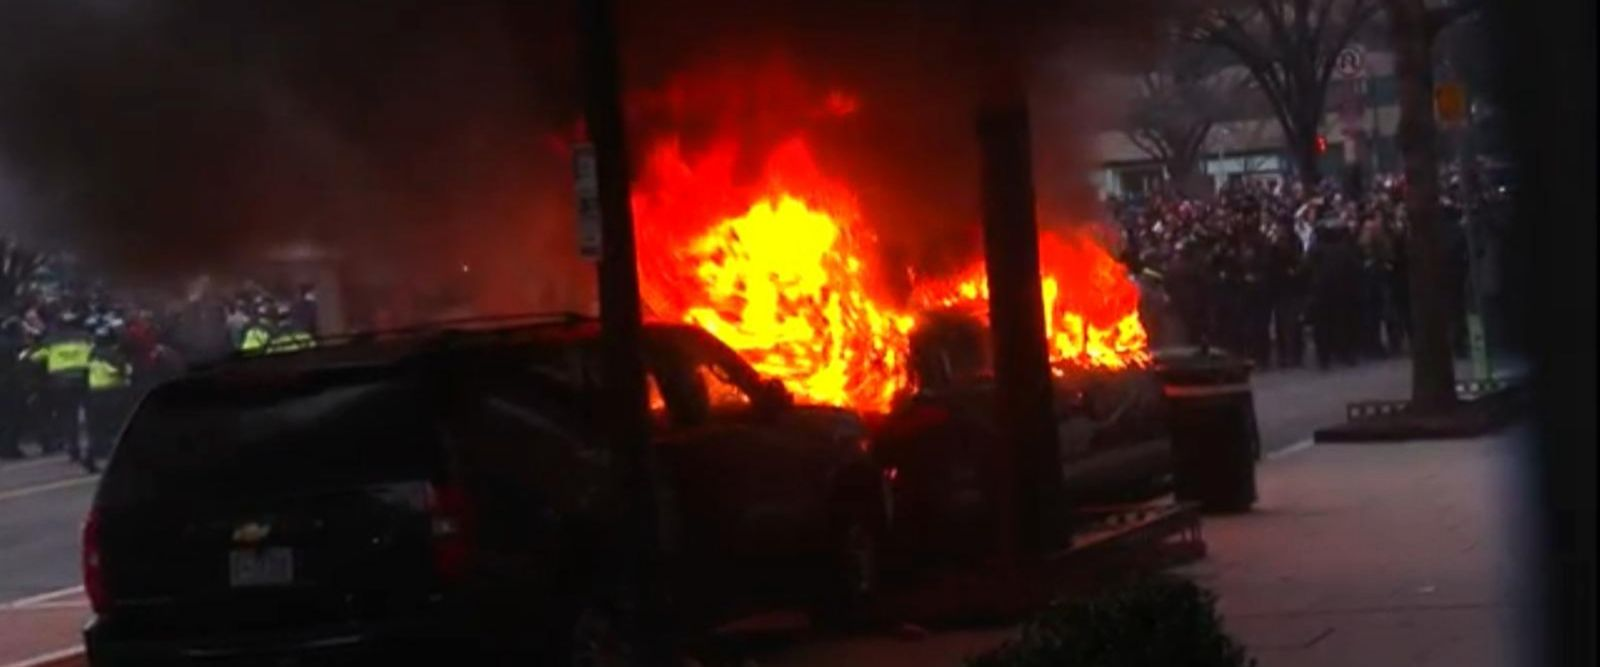 VIDEO: Police Keep Protesters Back After Vehicle Fire